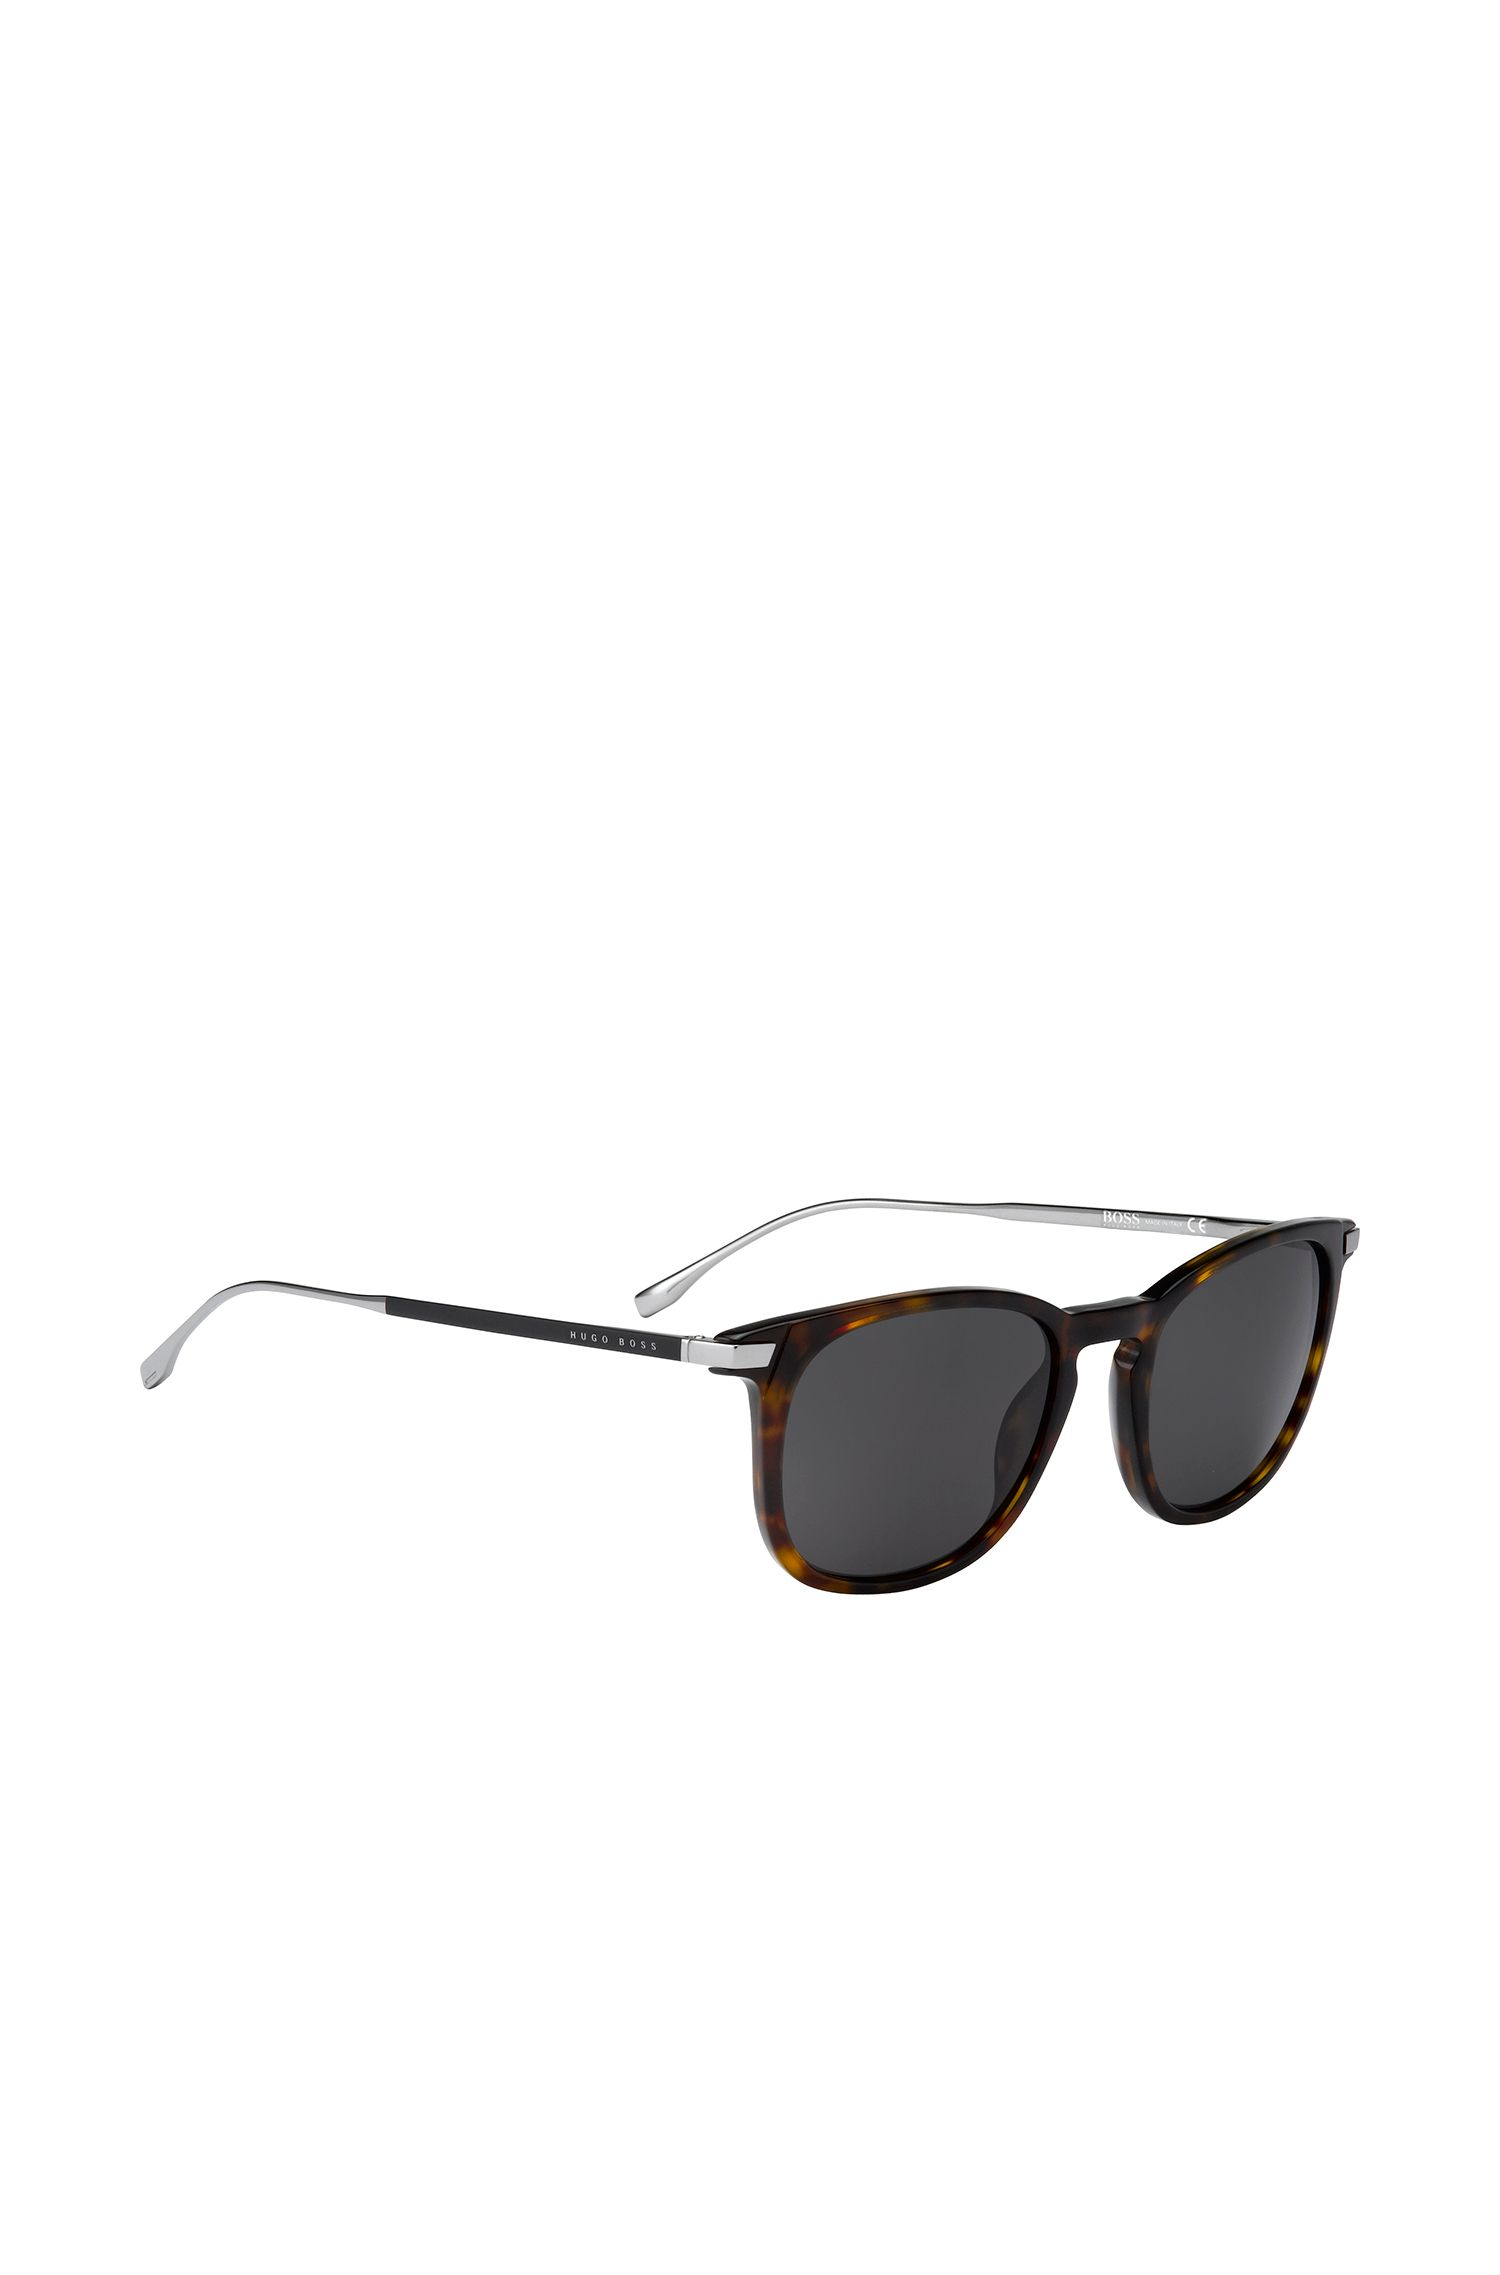 Black sunglasses with distinctive, angular fully rimmed frames: 'BOSS 0783/S'